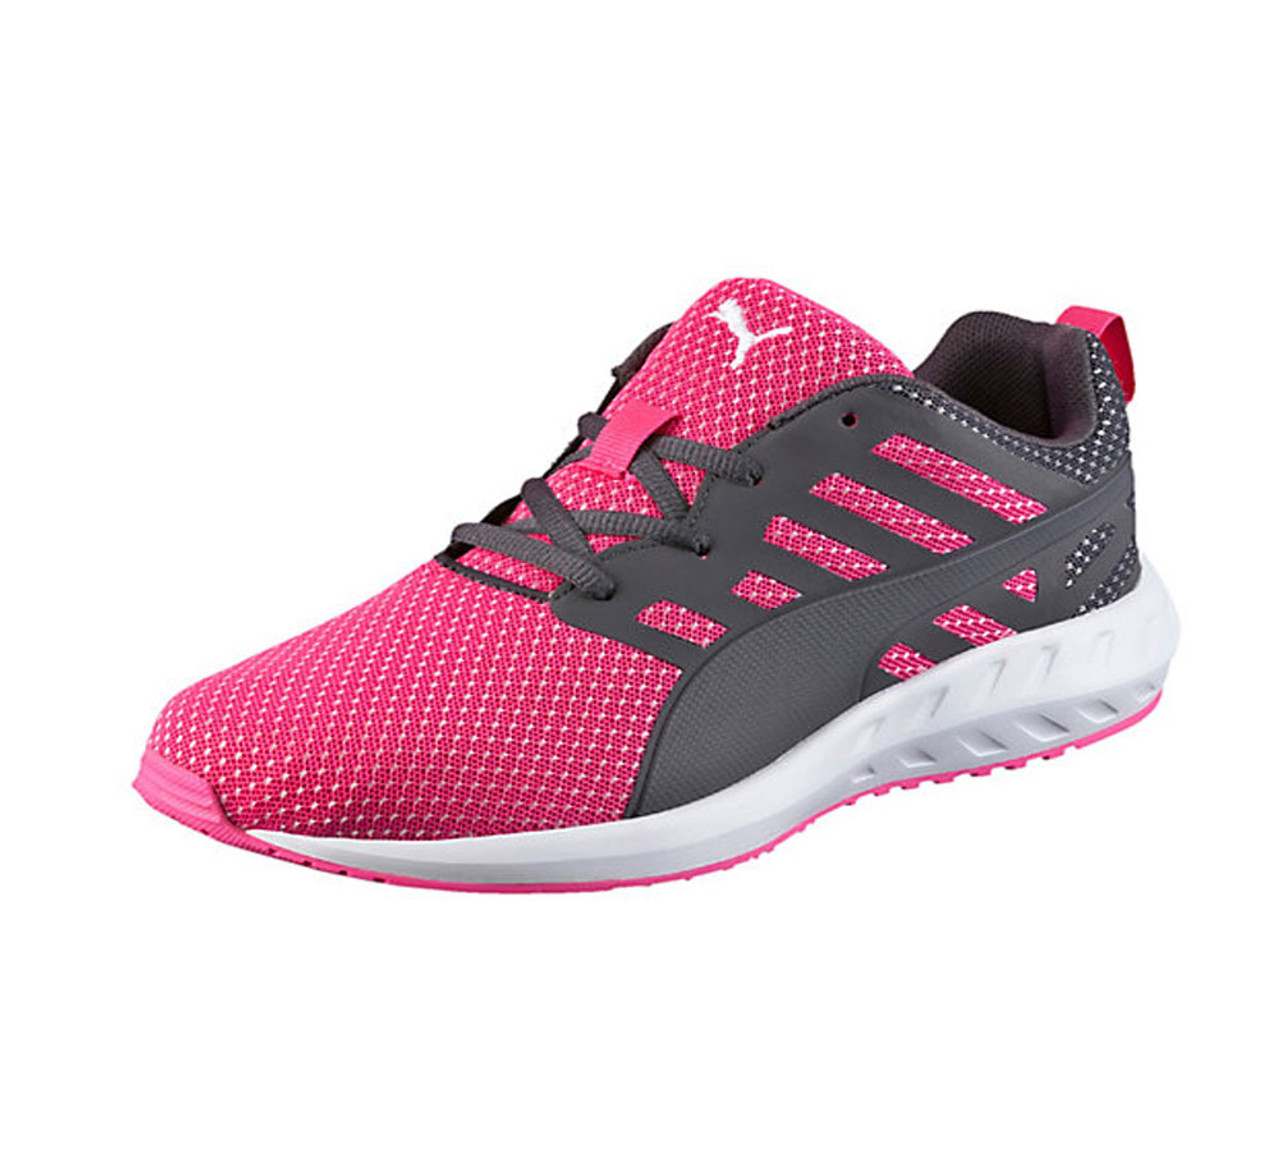 d7dff298265d Puma Women s Flare Mesh Running Shoe Pink Periscope - Shop now   Shoolu.com